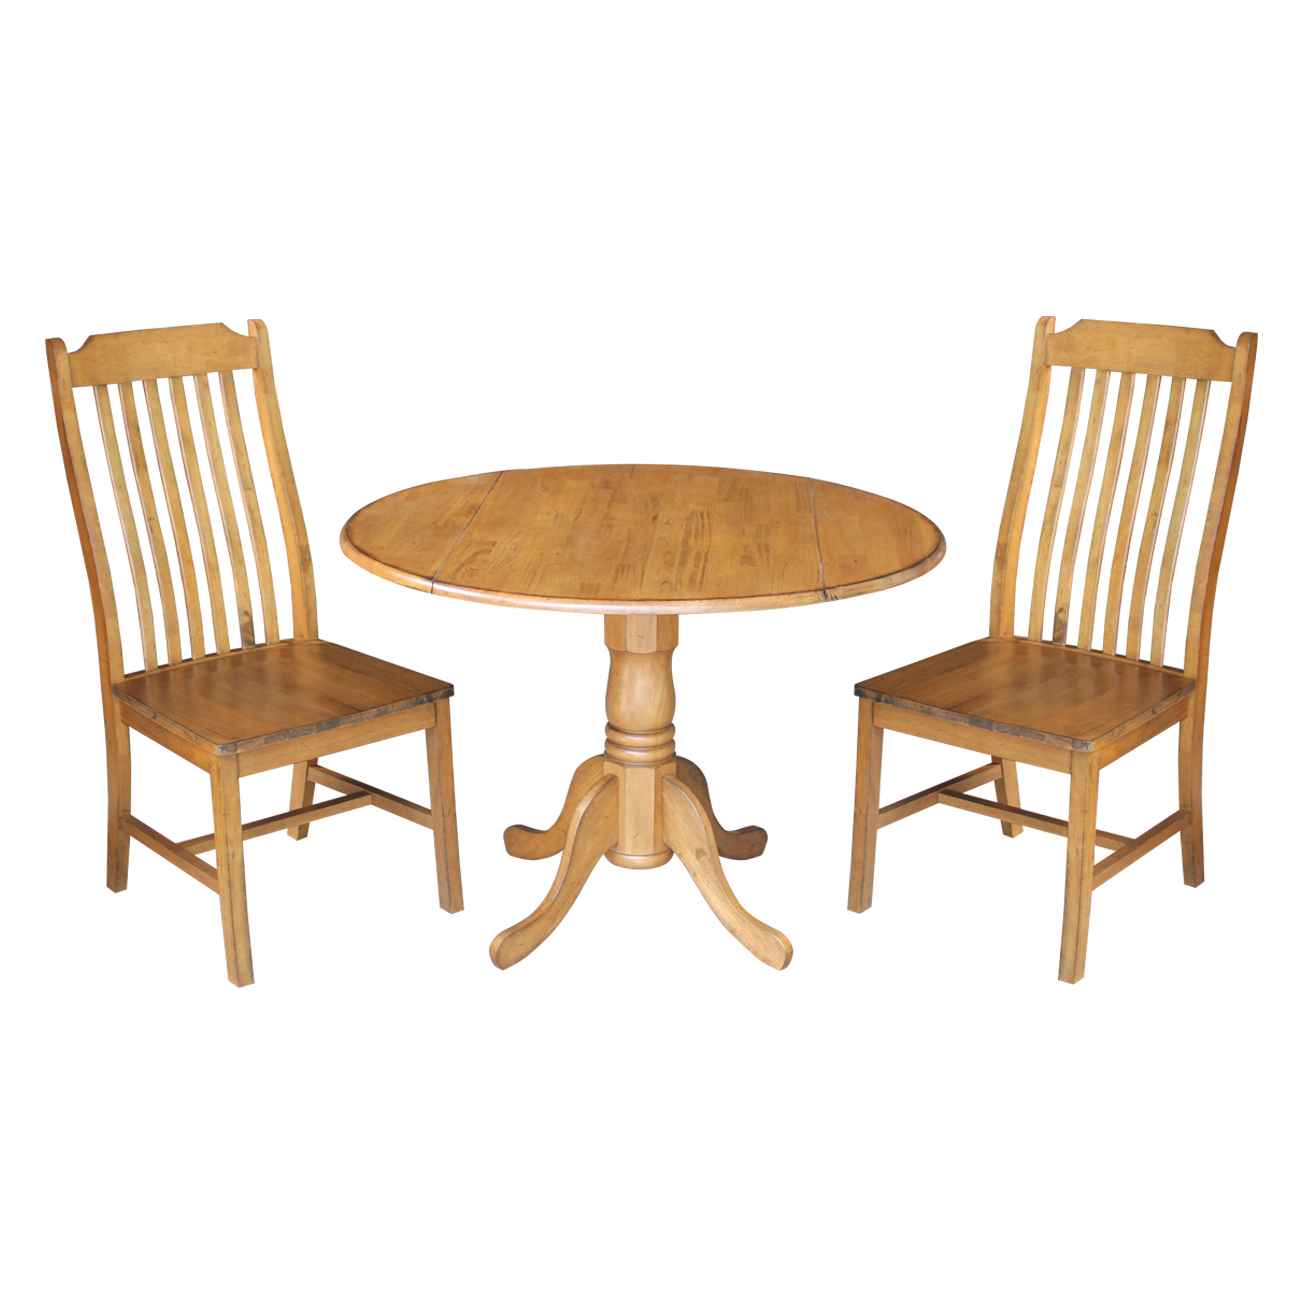 """42"""" Dual Drop Leaf Table and 2 Steambent Mission Chairs in Pecan - 3 Piece Set"""